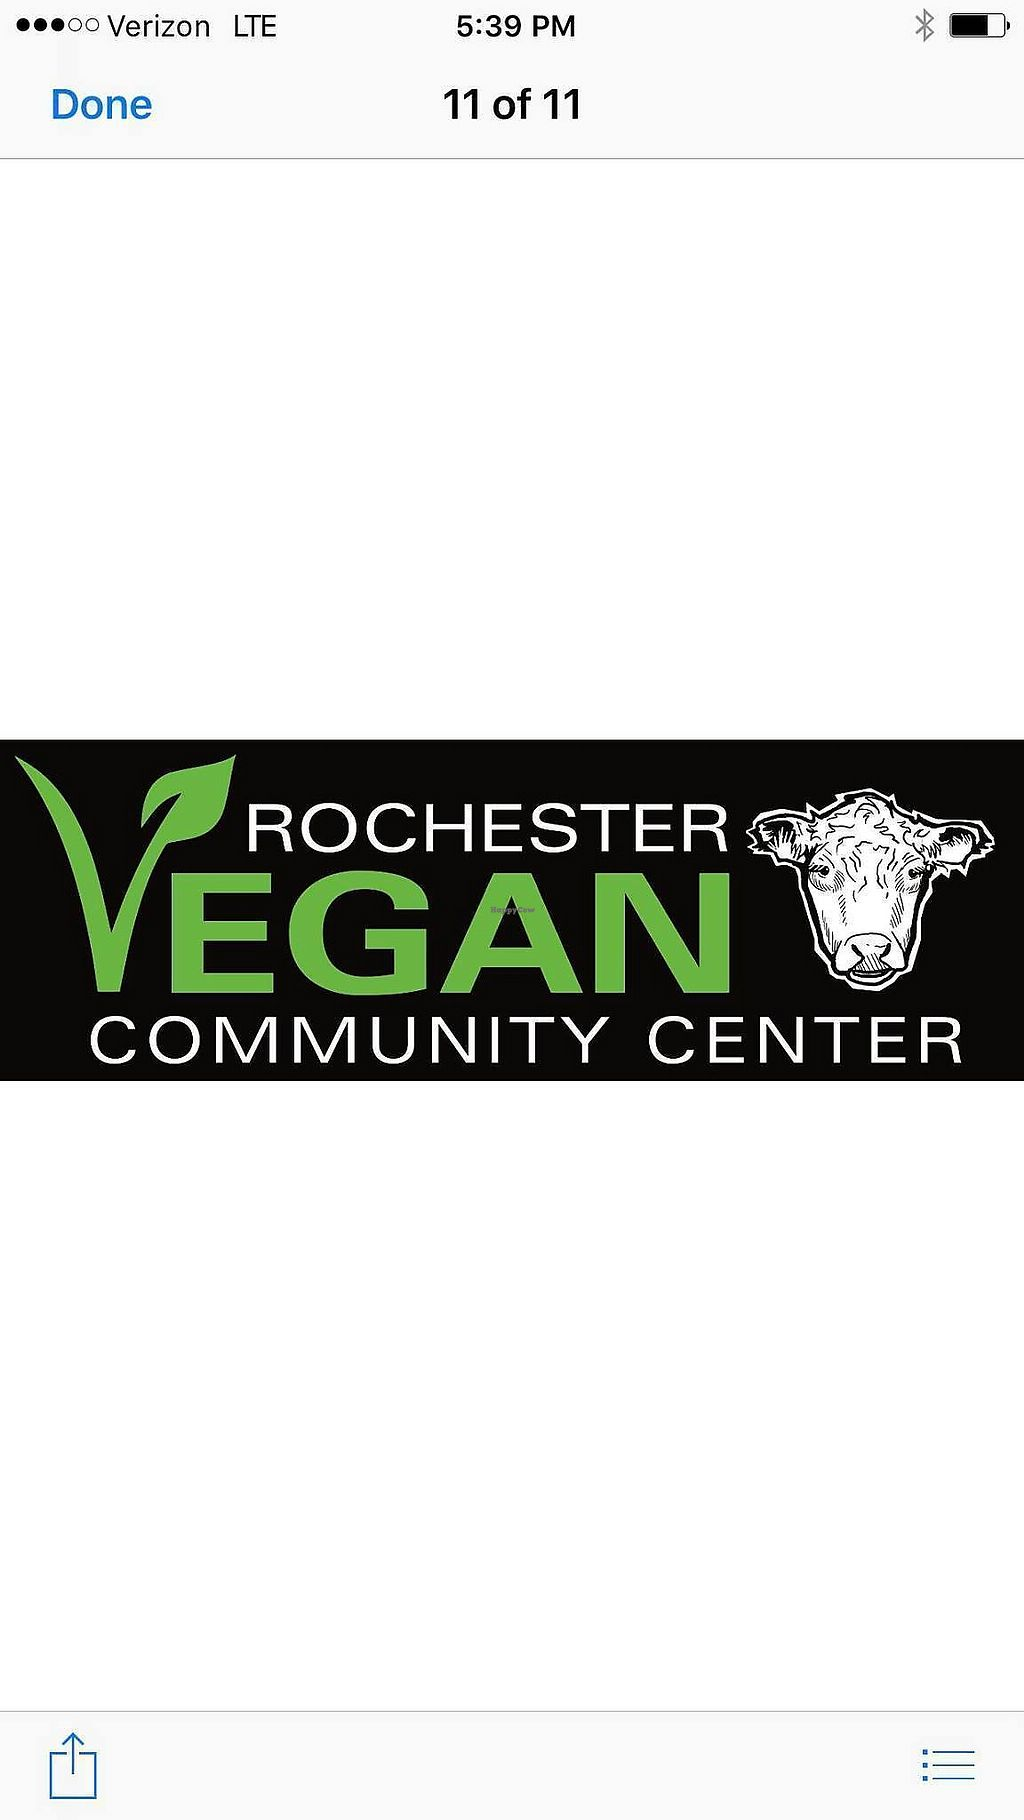 """Photo of Rochester Vegan Community Center  by <a href=""""/members/profile/Michael%20Isavegan"""">Michael Isavegan</a> <br/>Bumper Sticker <br/> February 5, 2018  - <a href='/contact/abuse/image/111285/355286'>Report</a>"""